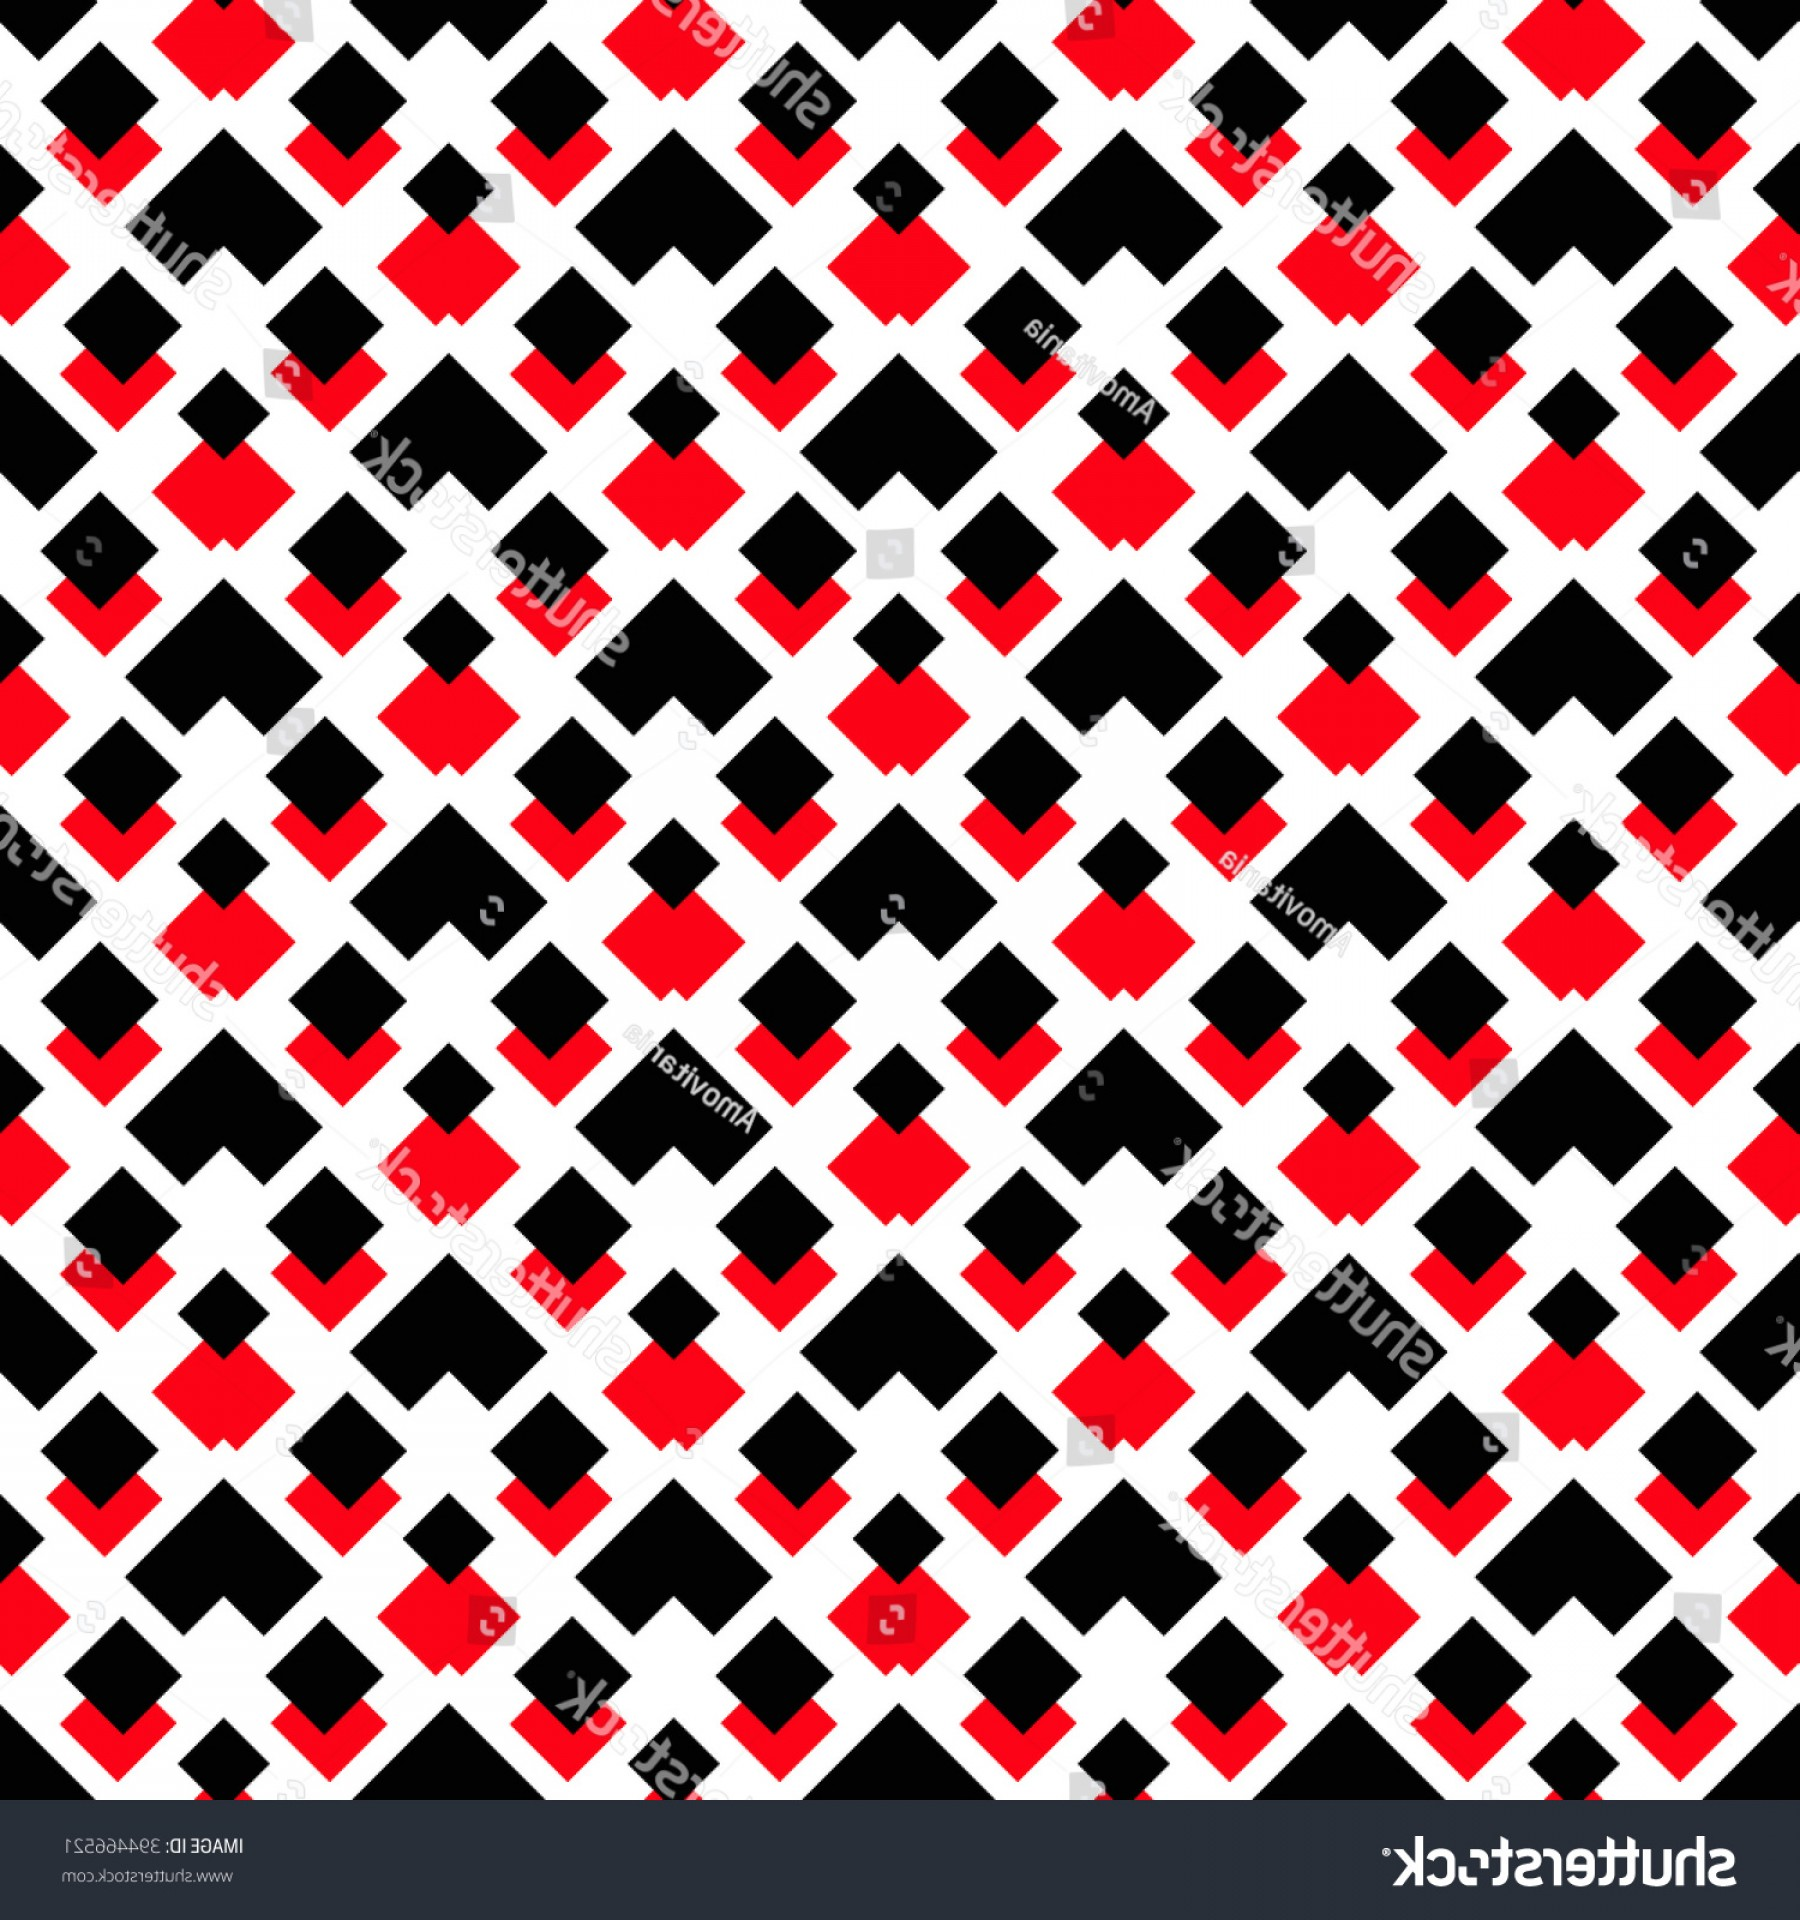 Red Black And White Vector Art: Black White Red Graphic Seamless Pattern